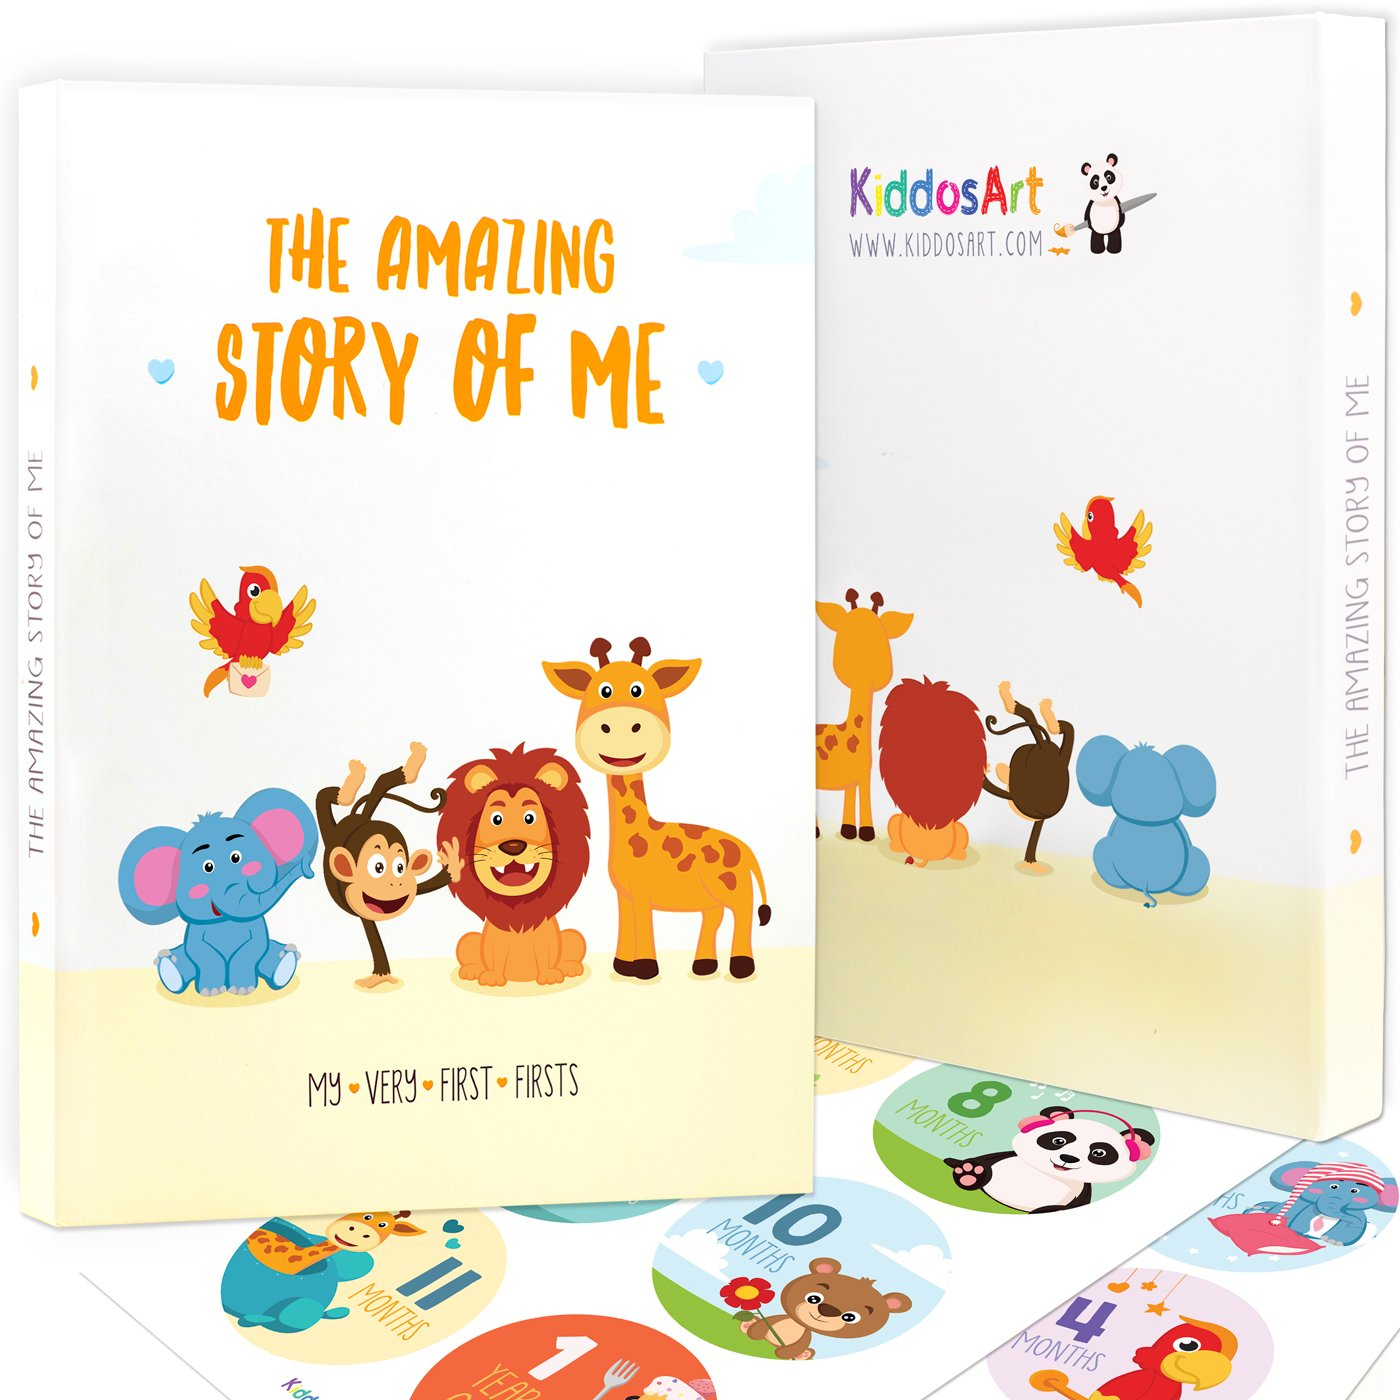 Limited Promo: The Amazing Baby Memory Book by KiddosArt. Keepsake Journal | Scrapbook | Photo Album, Record Memories and Milestones of The First 5 Years On 72 Beautiful Pages. Baby Shower Gift Set